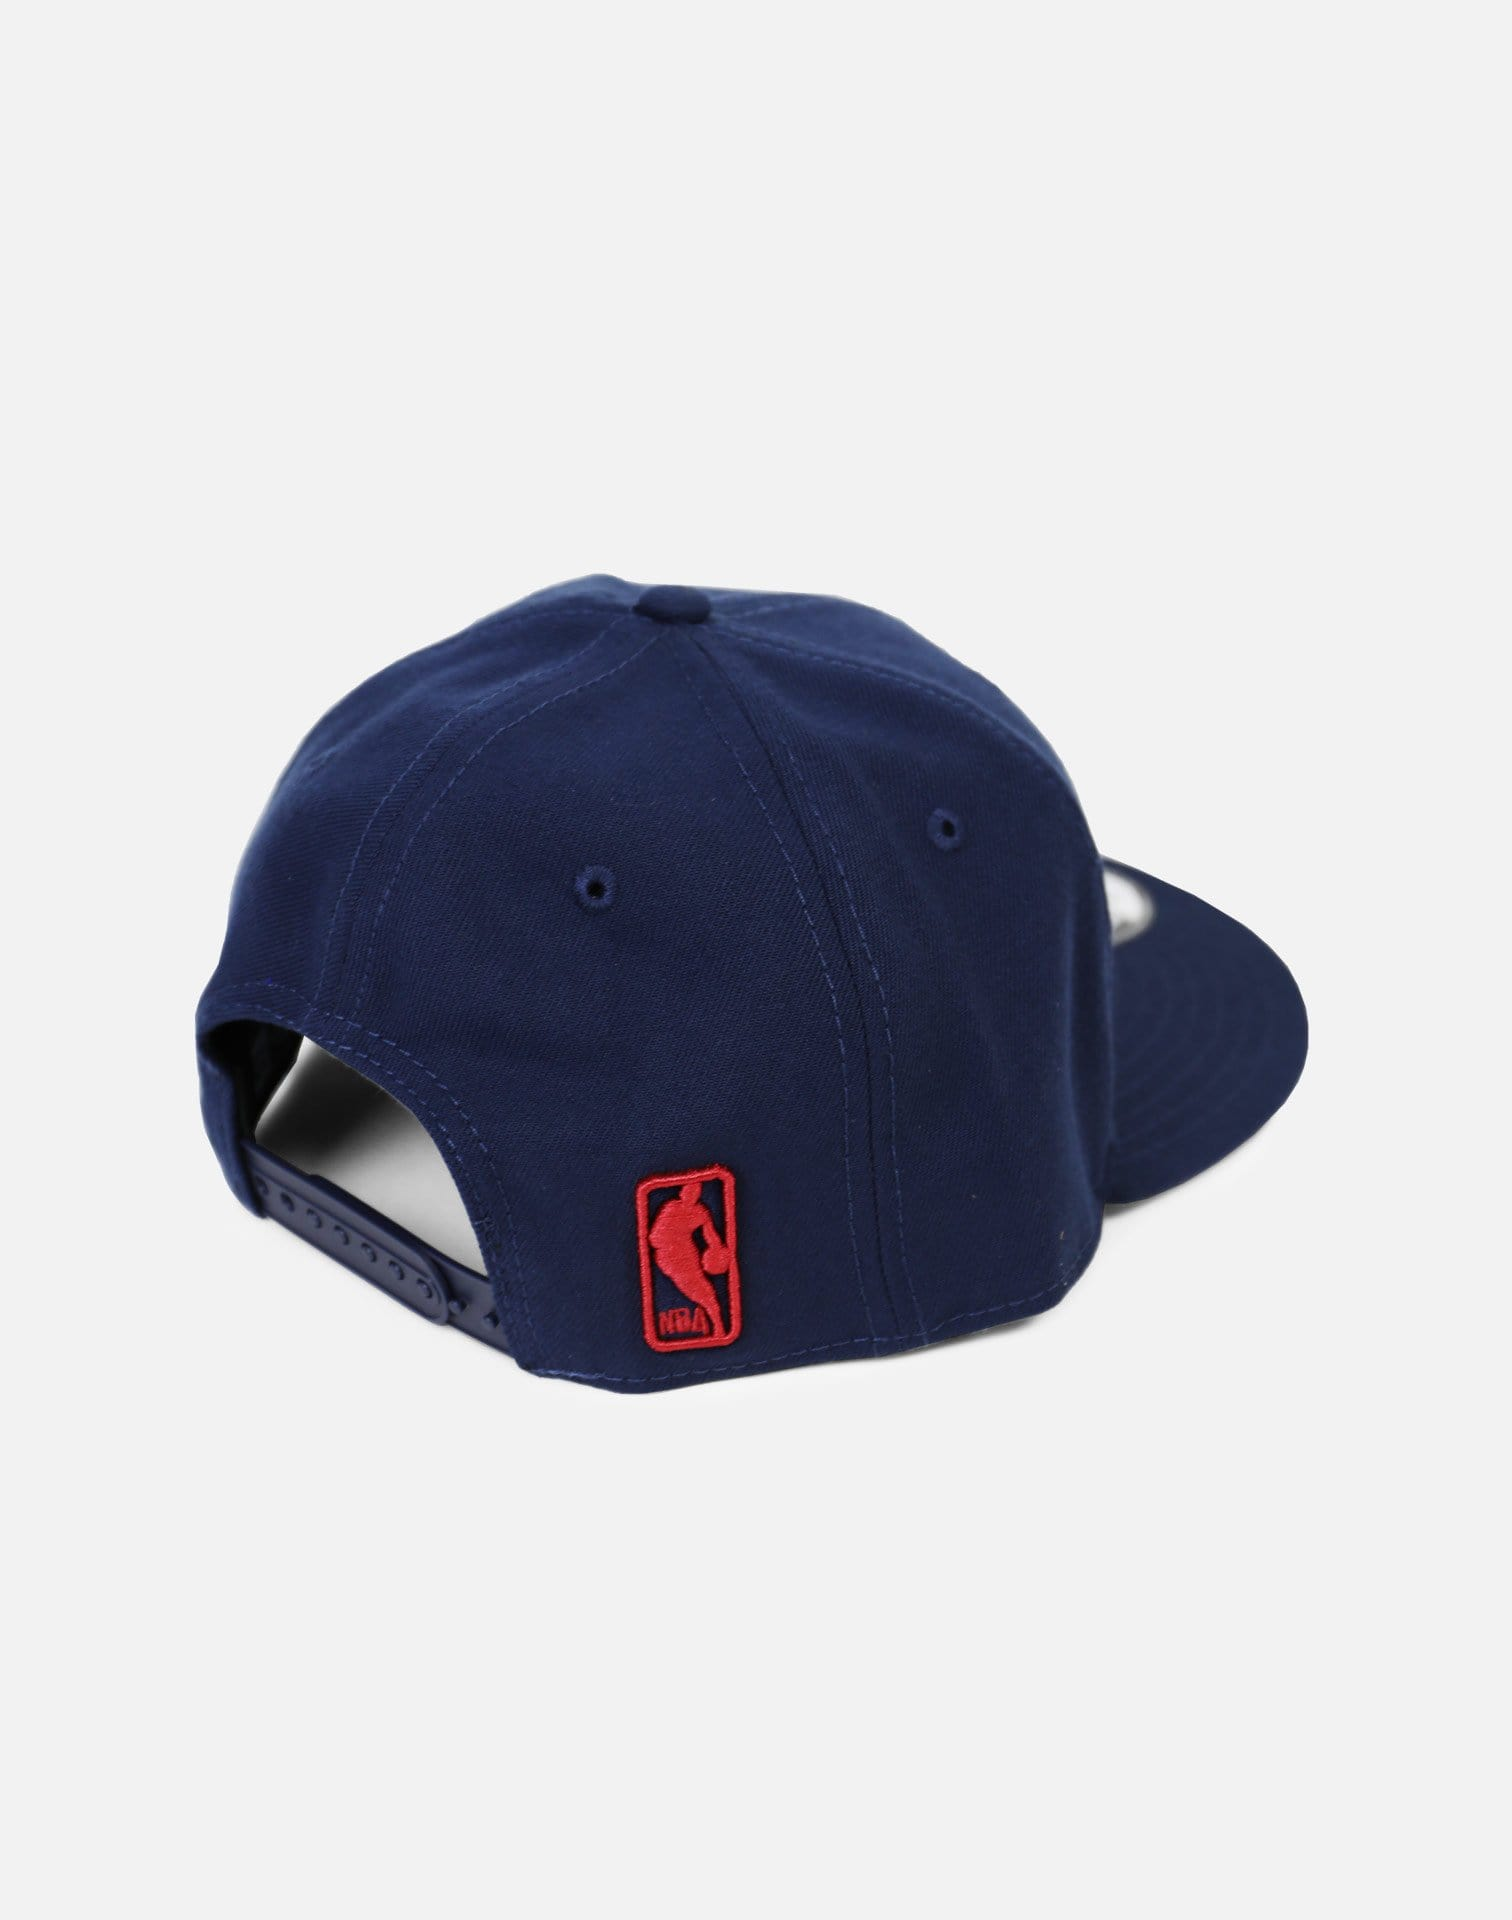 New Era 9Fifty Cleveland Cavaliers Snapback Hat (Navy)